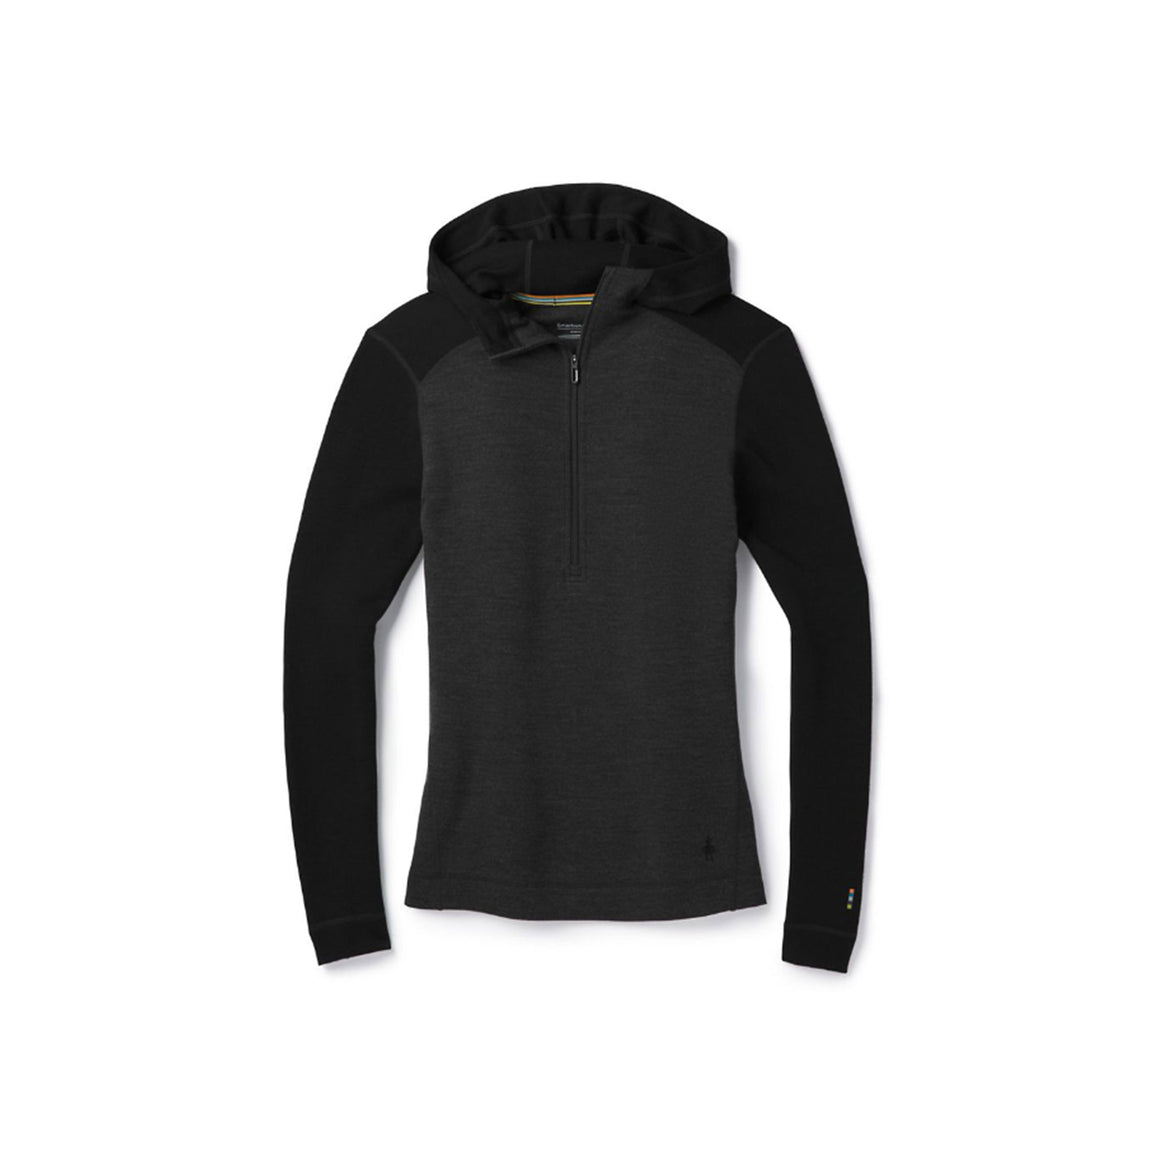 Smartwool Merino 250 Baselayer 1/2 Zip Hoody - Women's